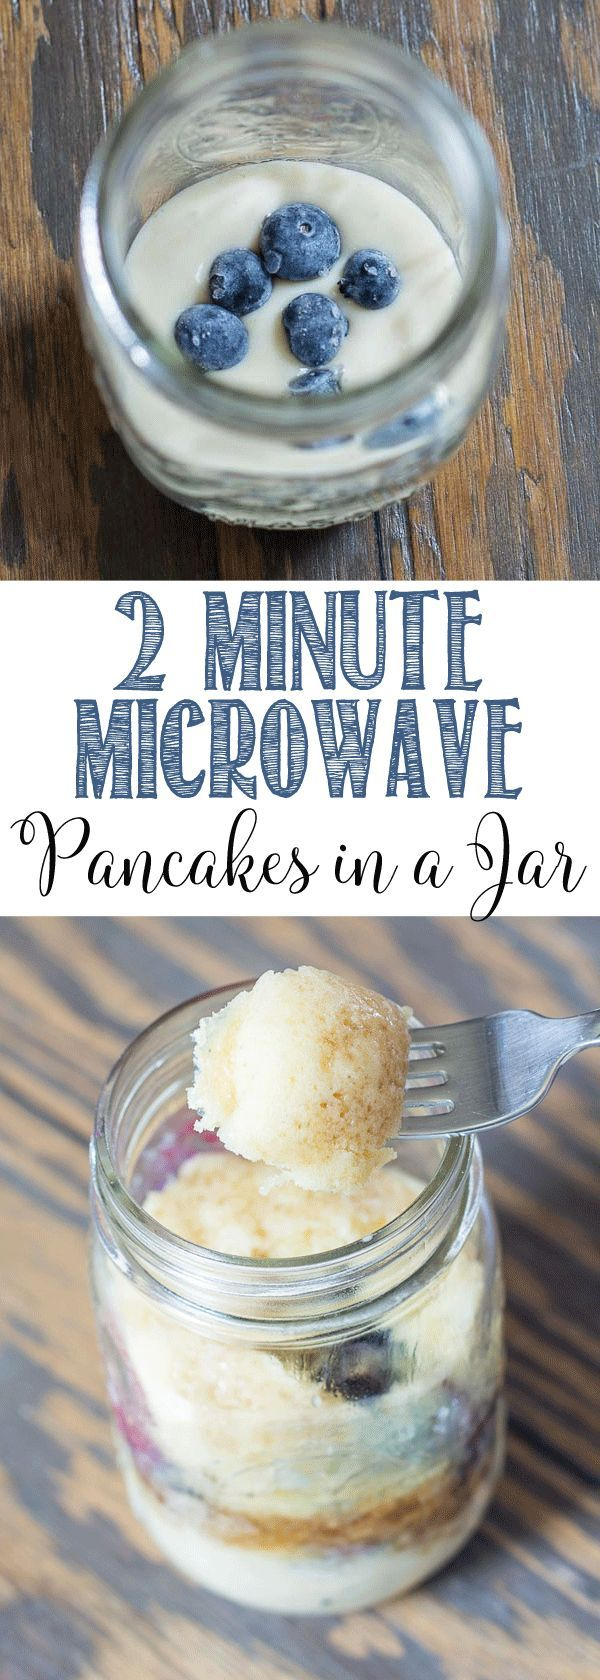 2 Minute Microwave Blueberry Pancakes in a Jar | Prep your breakfast in advance | Mason Jar Pancakes